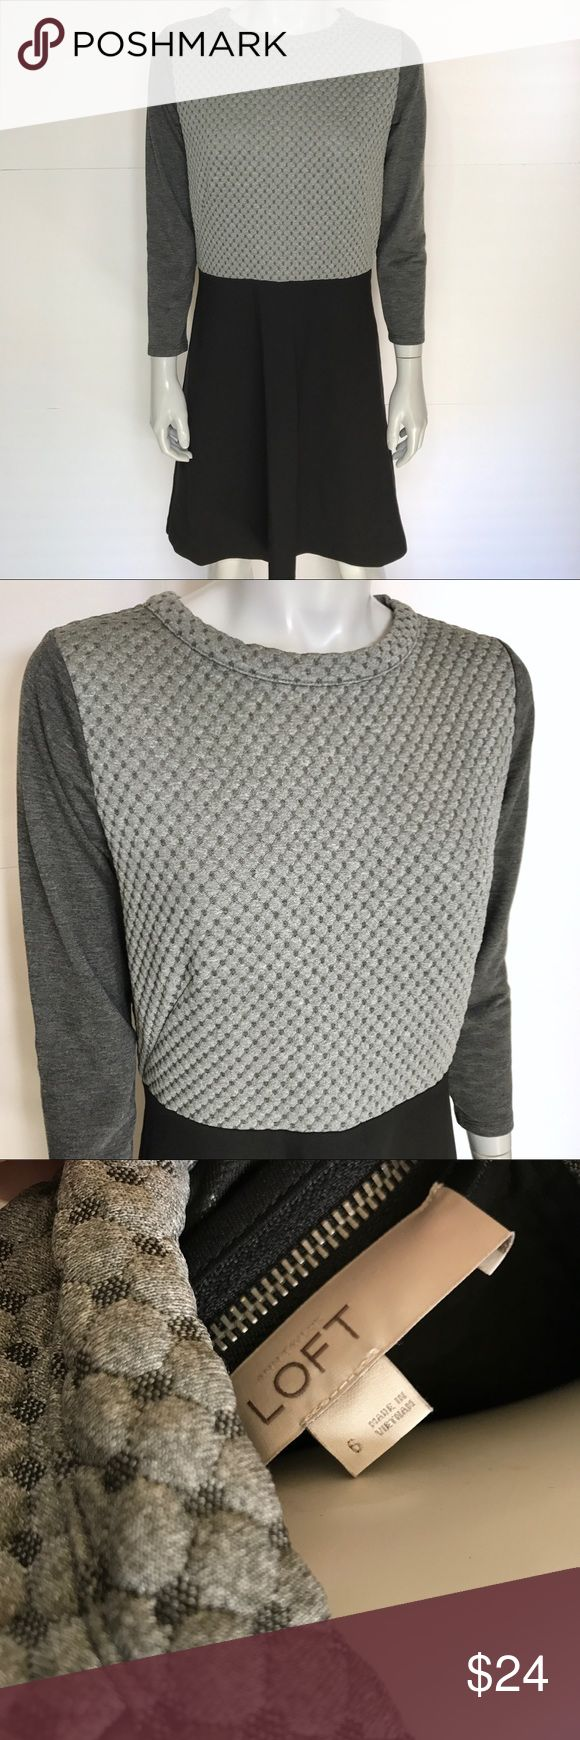 {LOFT} gray & black long sleeve dress Super comfortable neutral color block dress. Nice texture on light gray part. Crew neck dress zips up in back. Soft and stylish dress for many occasions. LOFT Dresses Long Sleeve